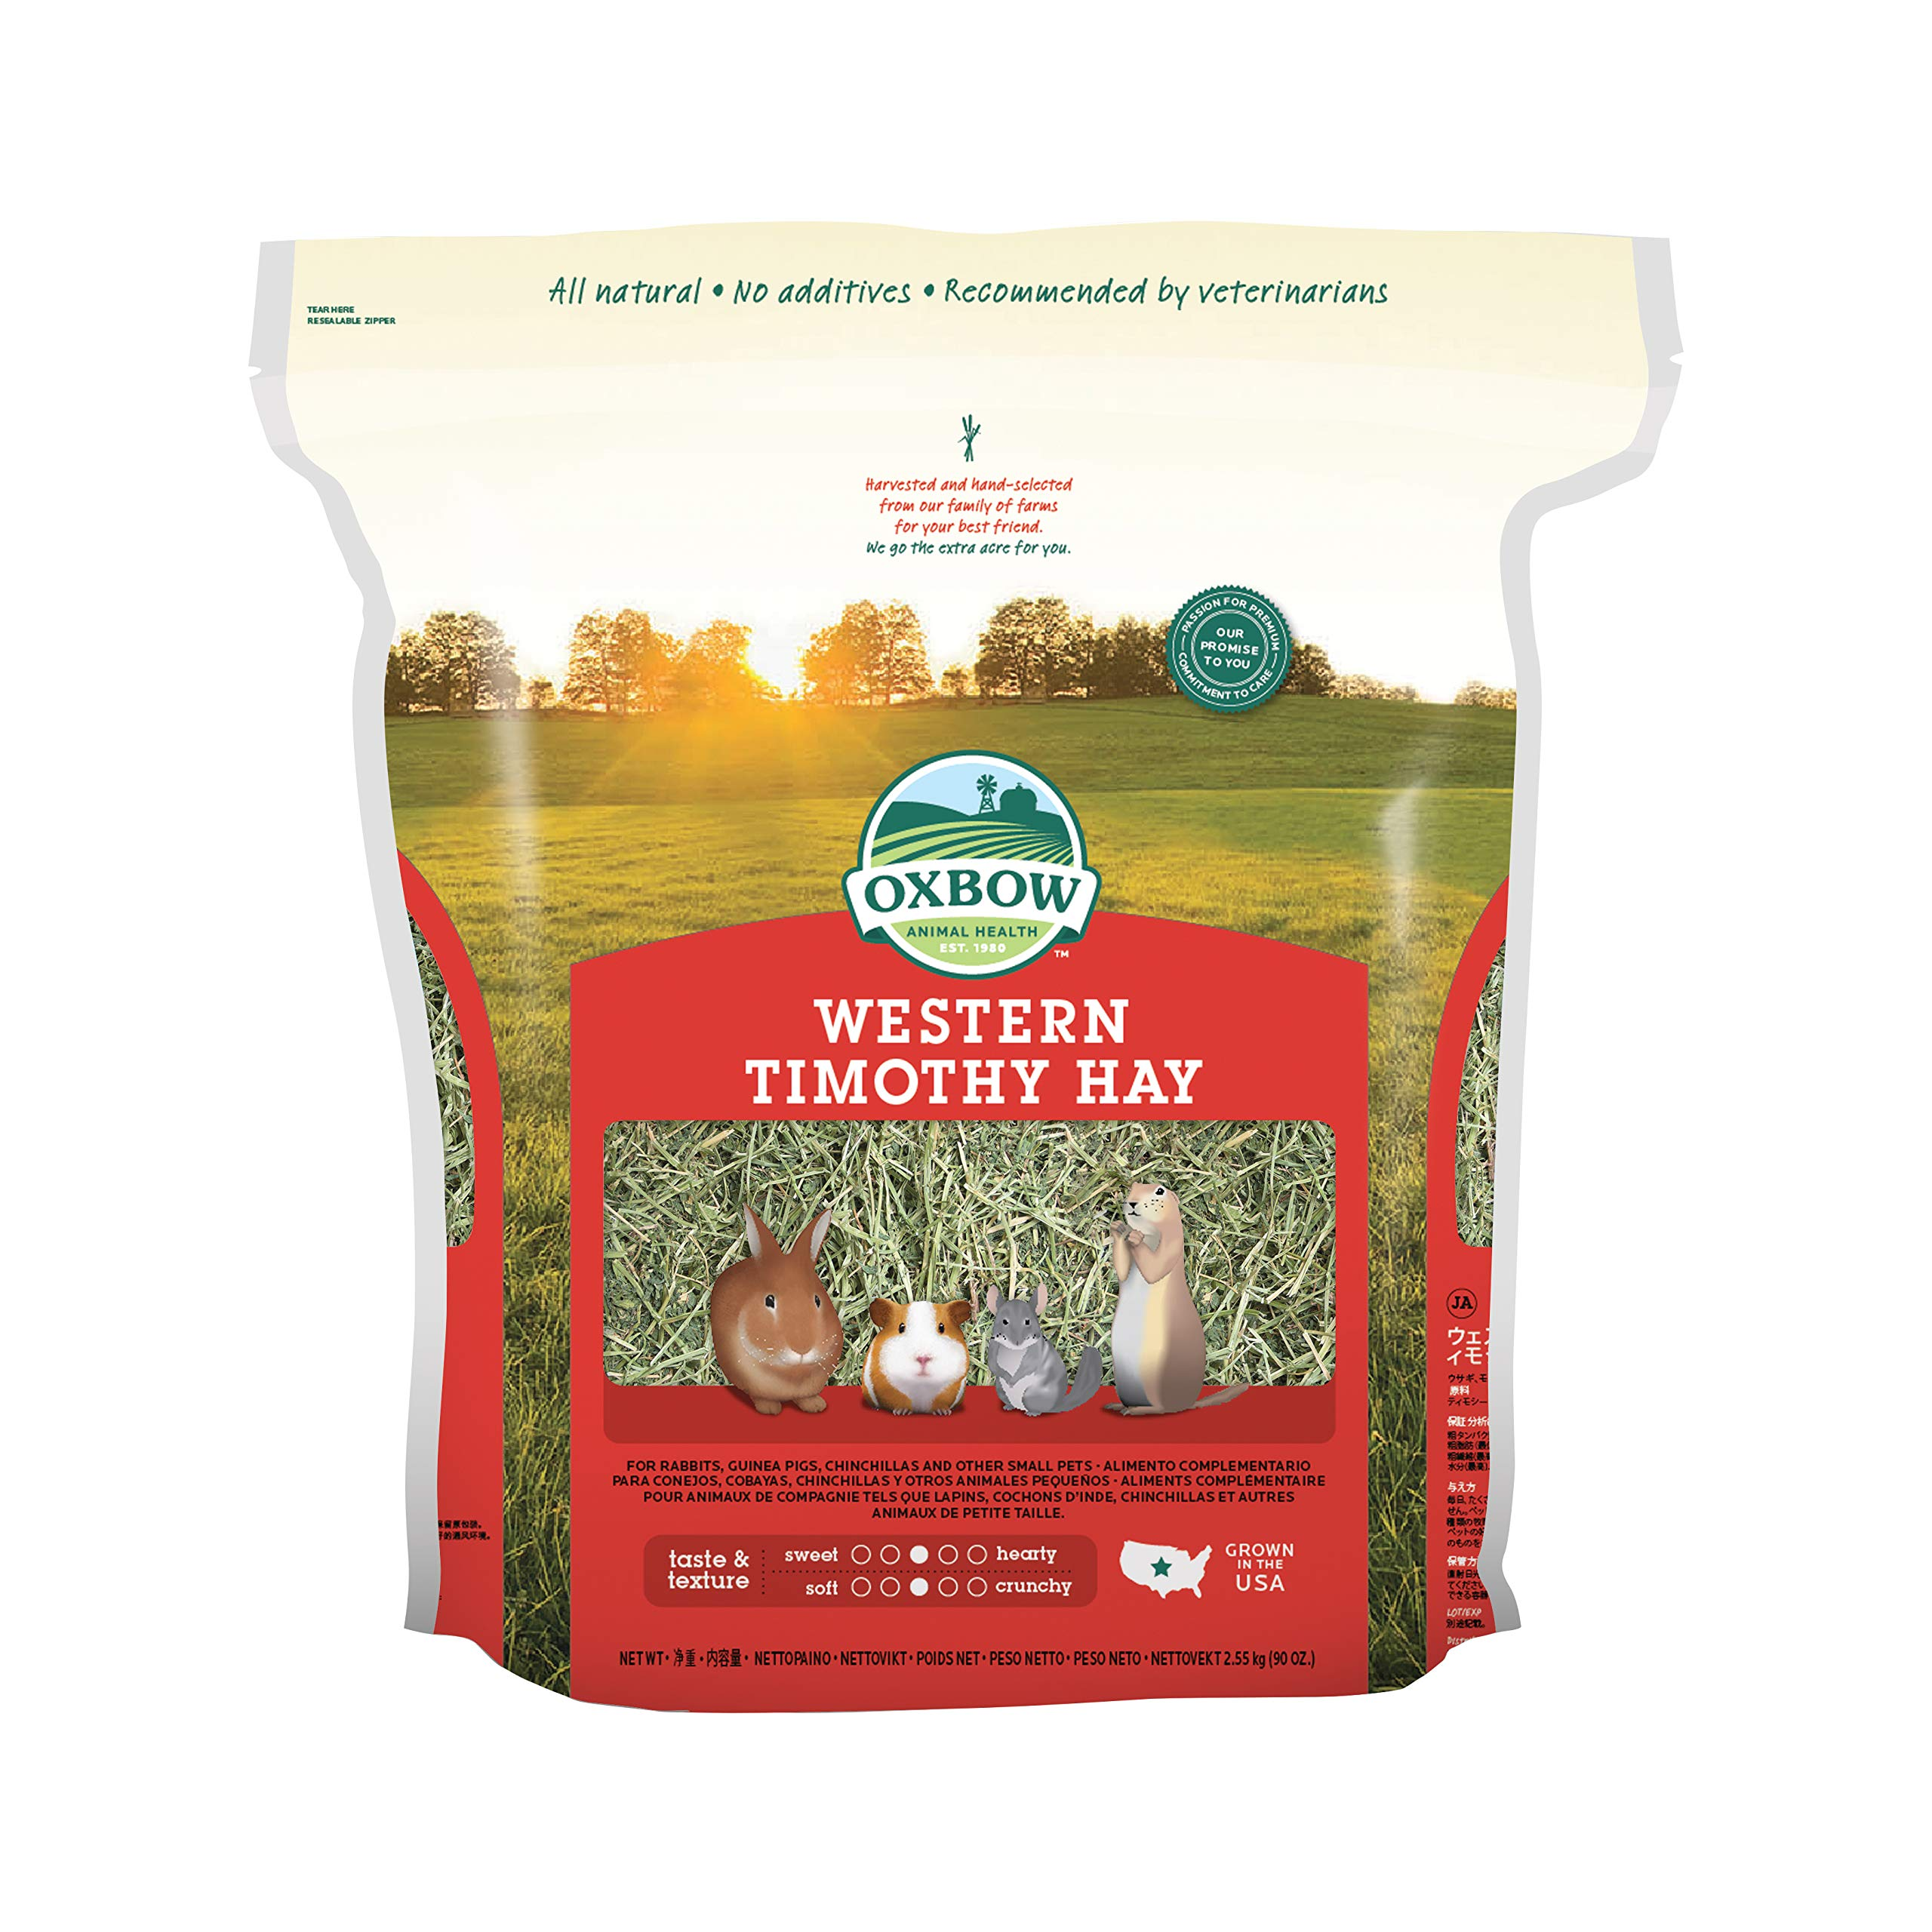 Oxbow Animal Health Western Timothy Hay For Pets, 90-Ounce by Oxbow Animal Health